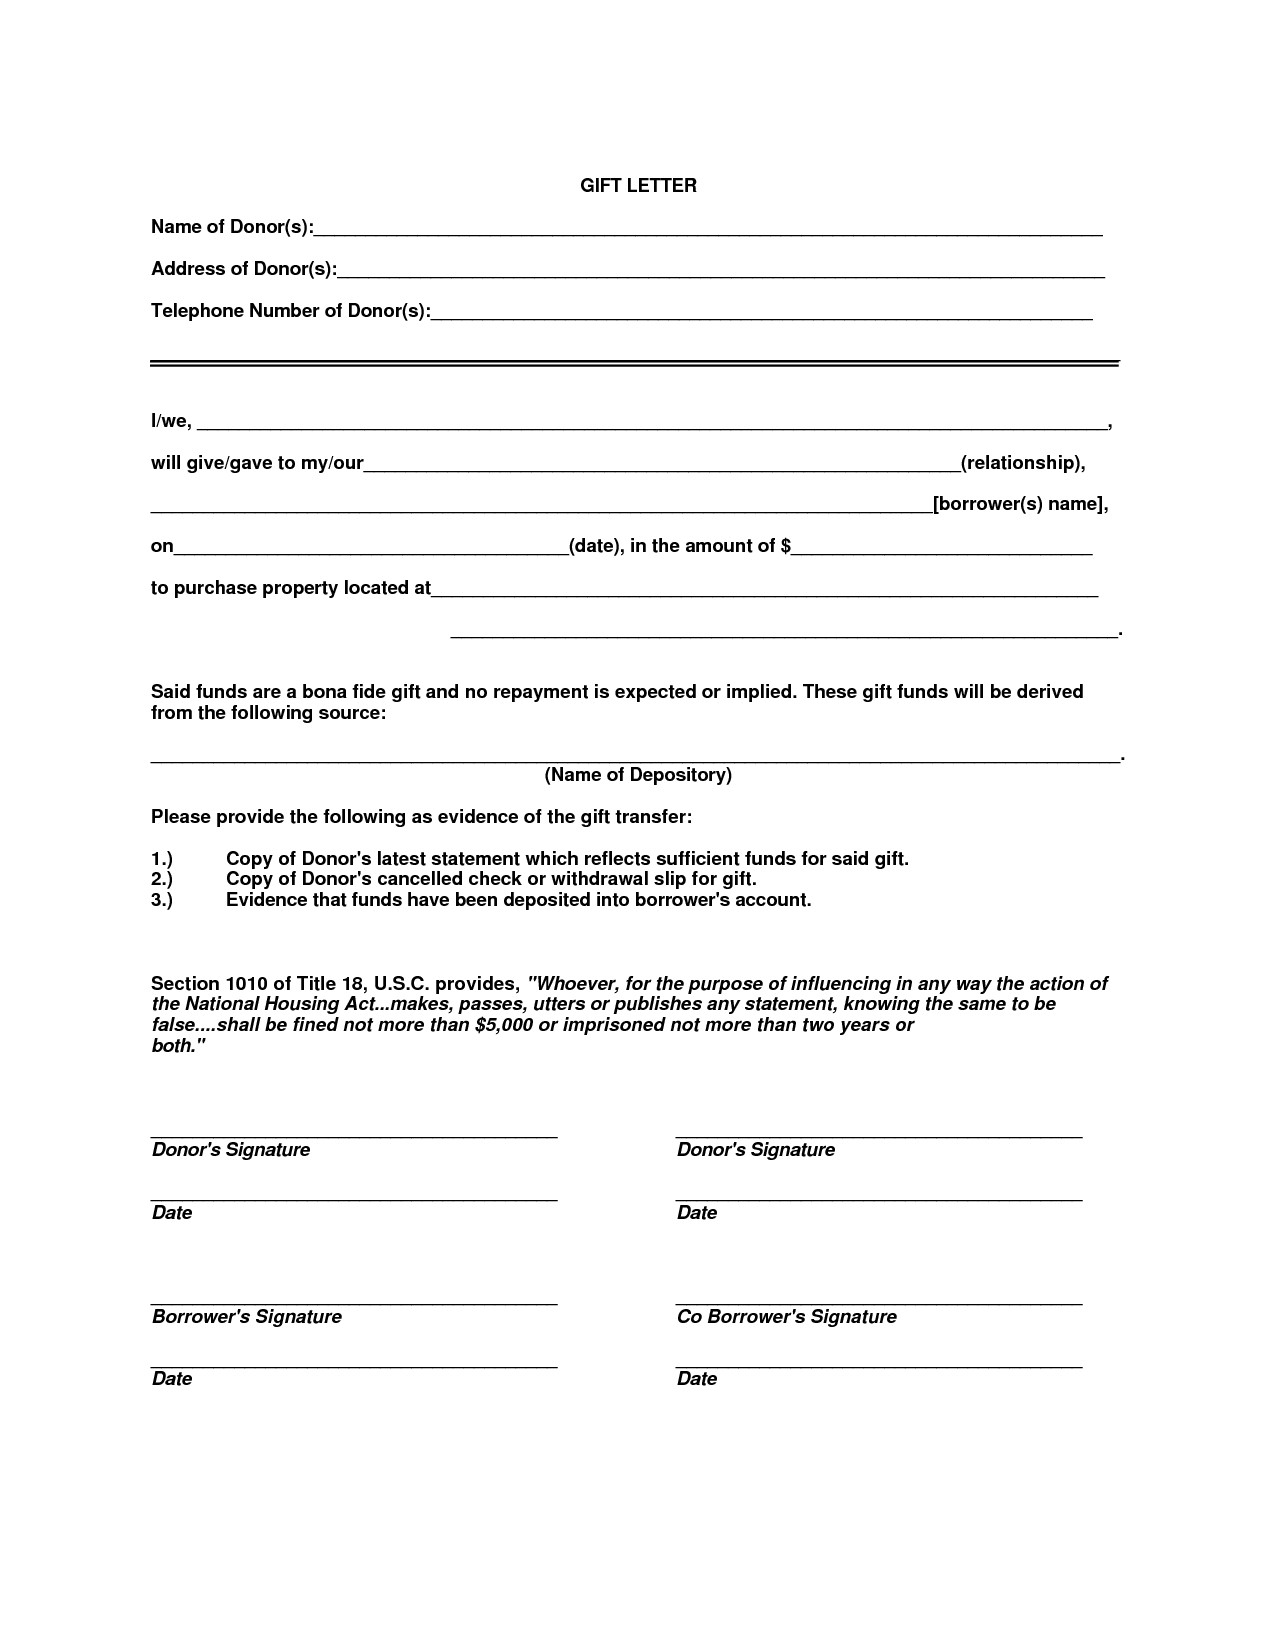 Fha Gift Letter Template - Mortgage Down Payment Gift Letter Template